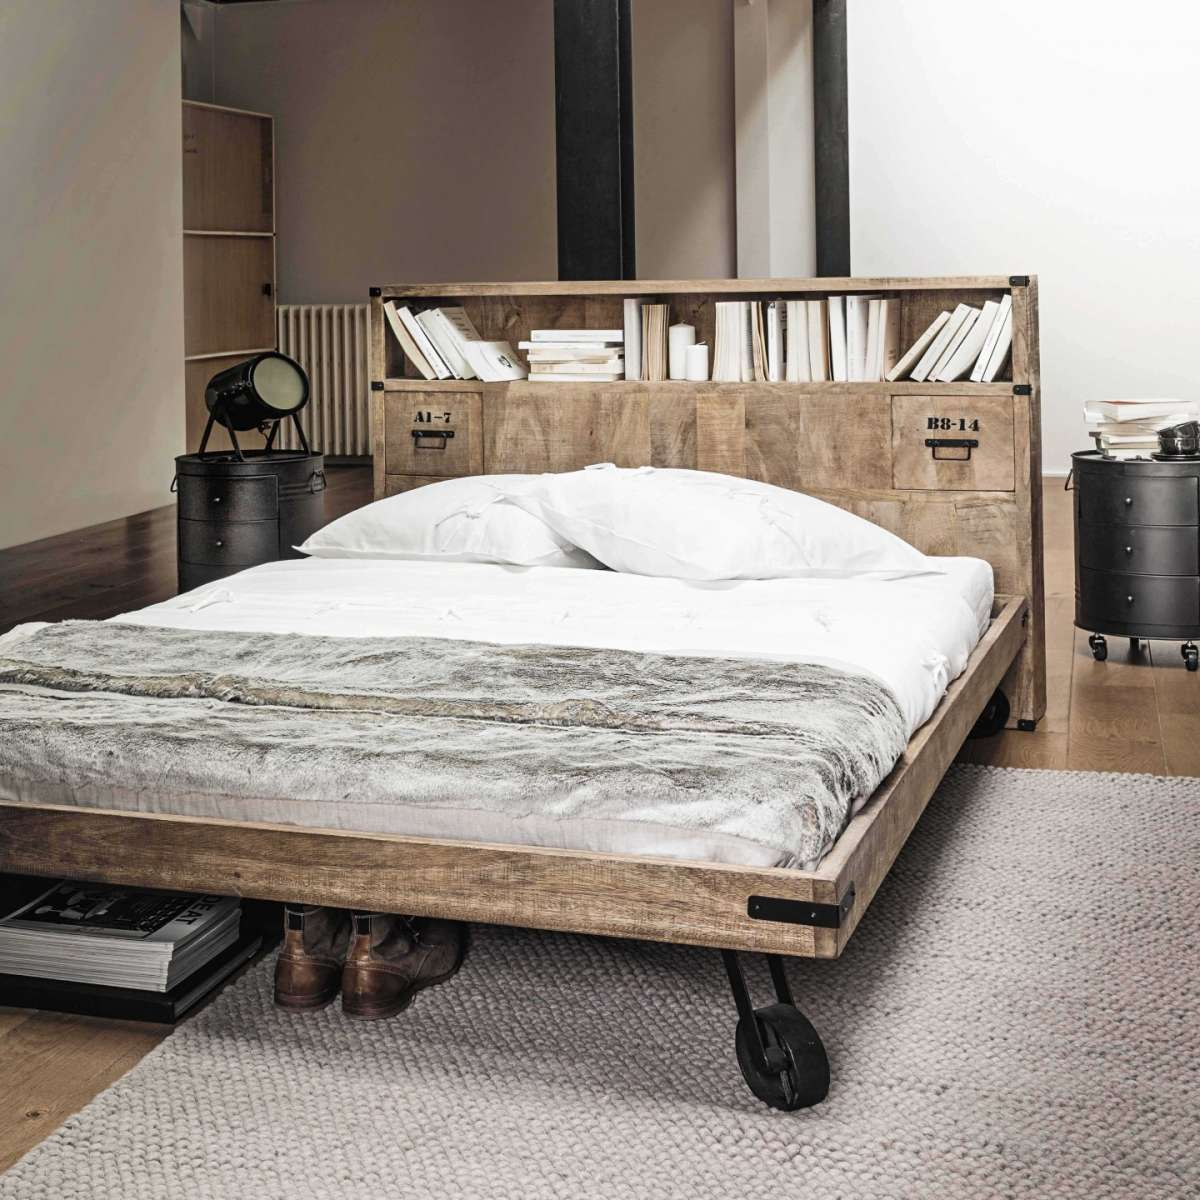 Testiere letto originali foto 15 40 design mag for Maison du monde willy